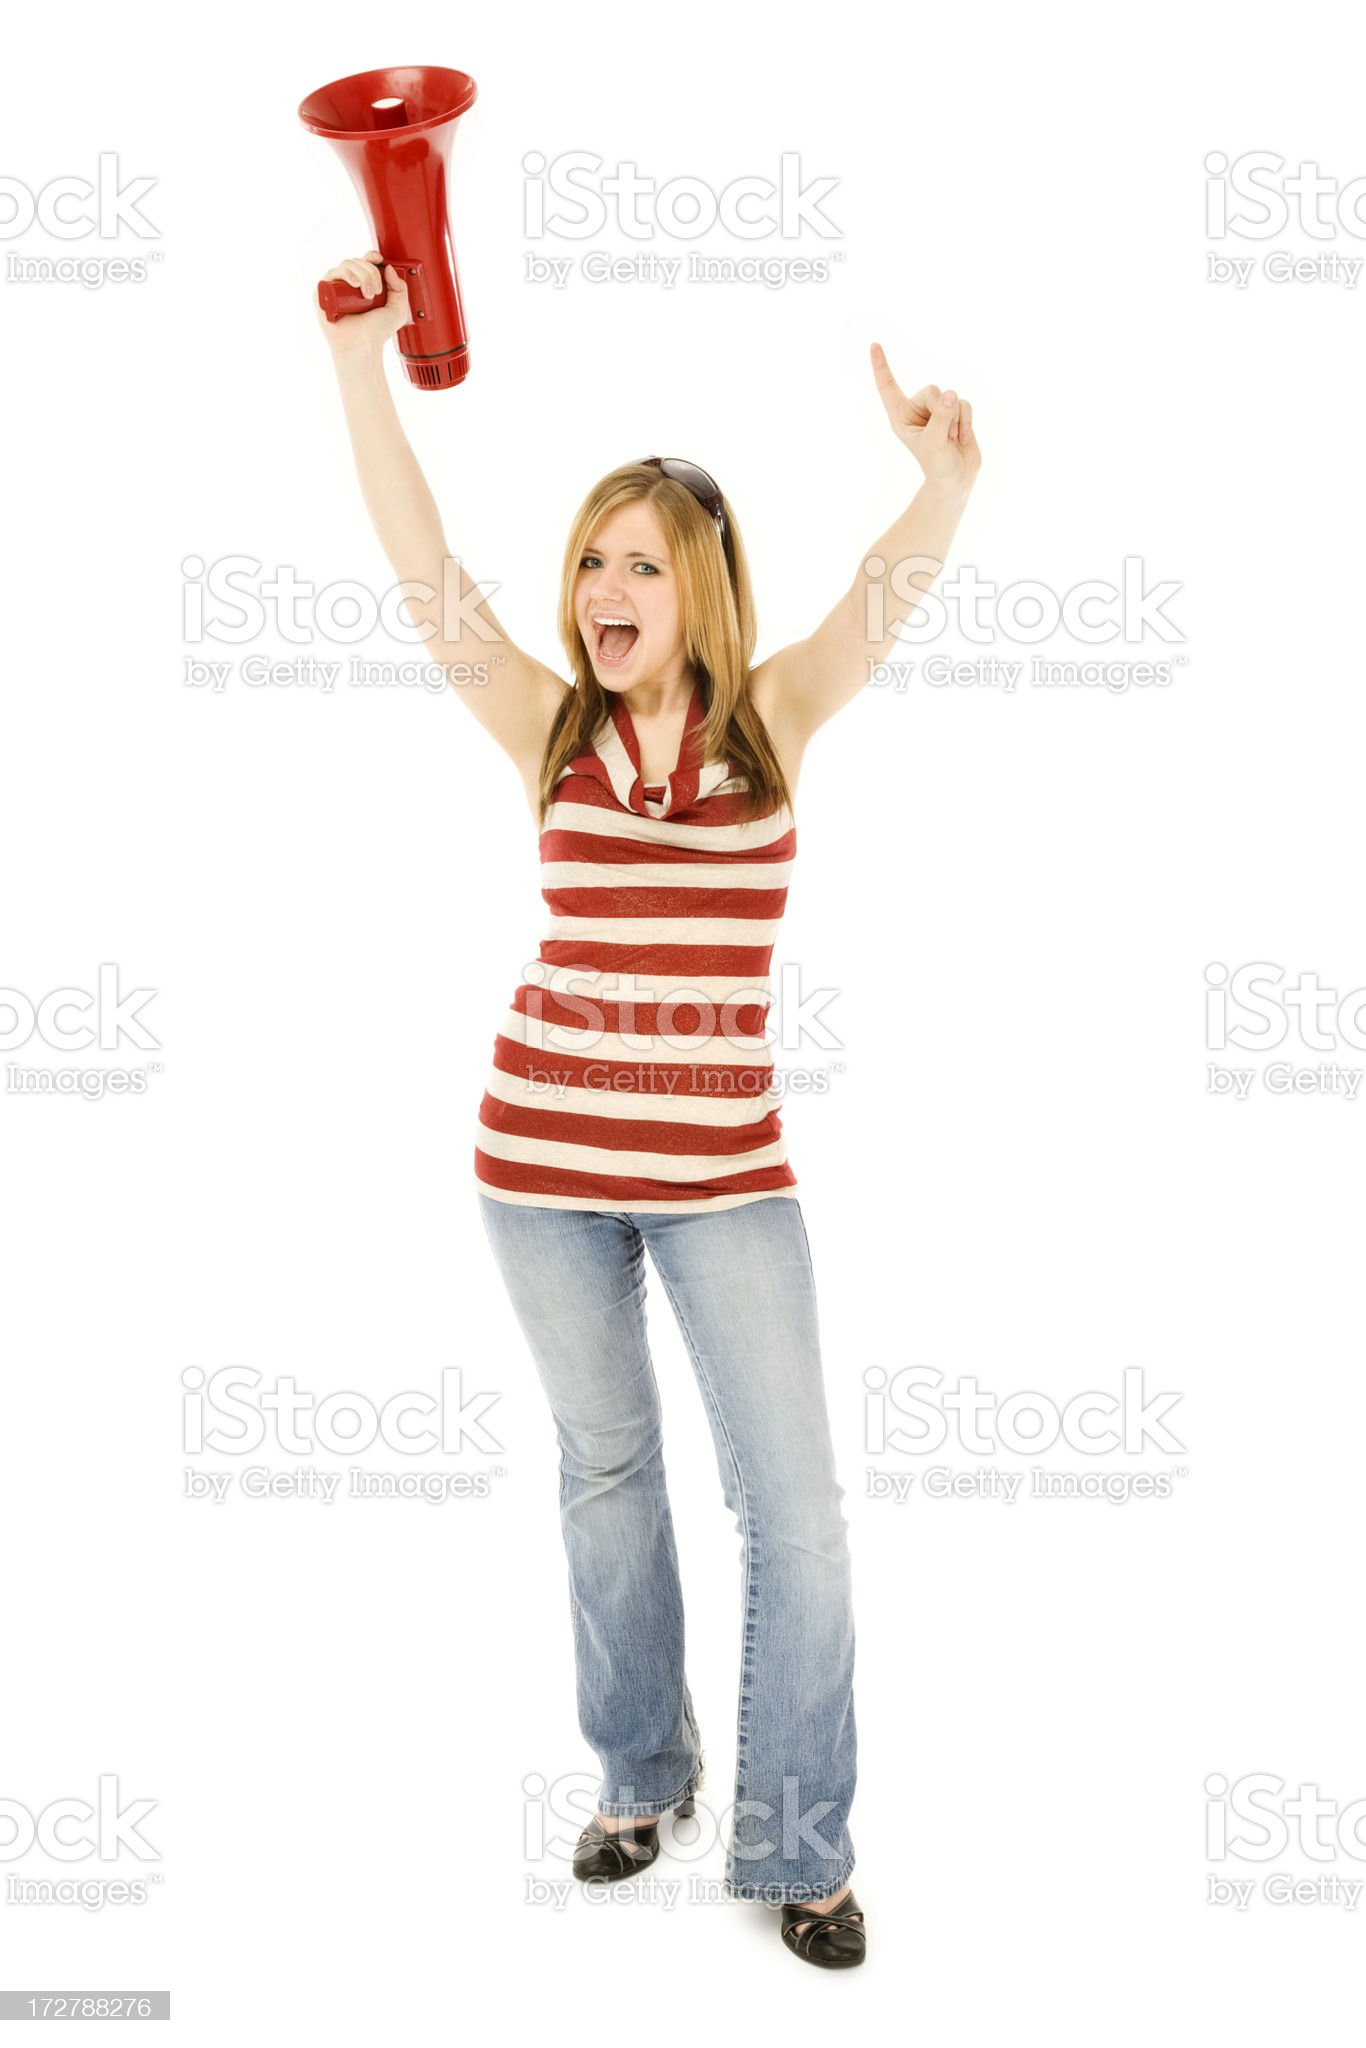 Cheering for Number One royalty-free stock photo